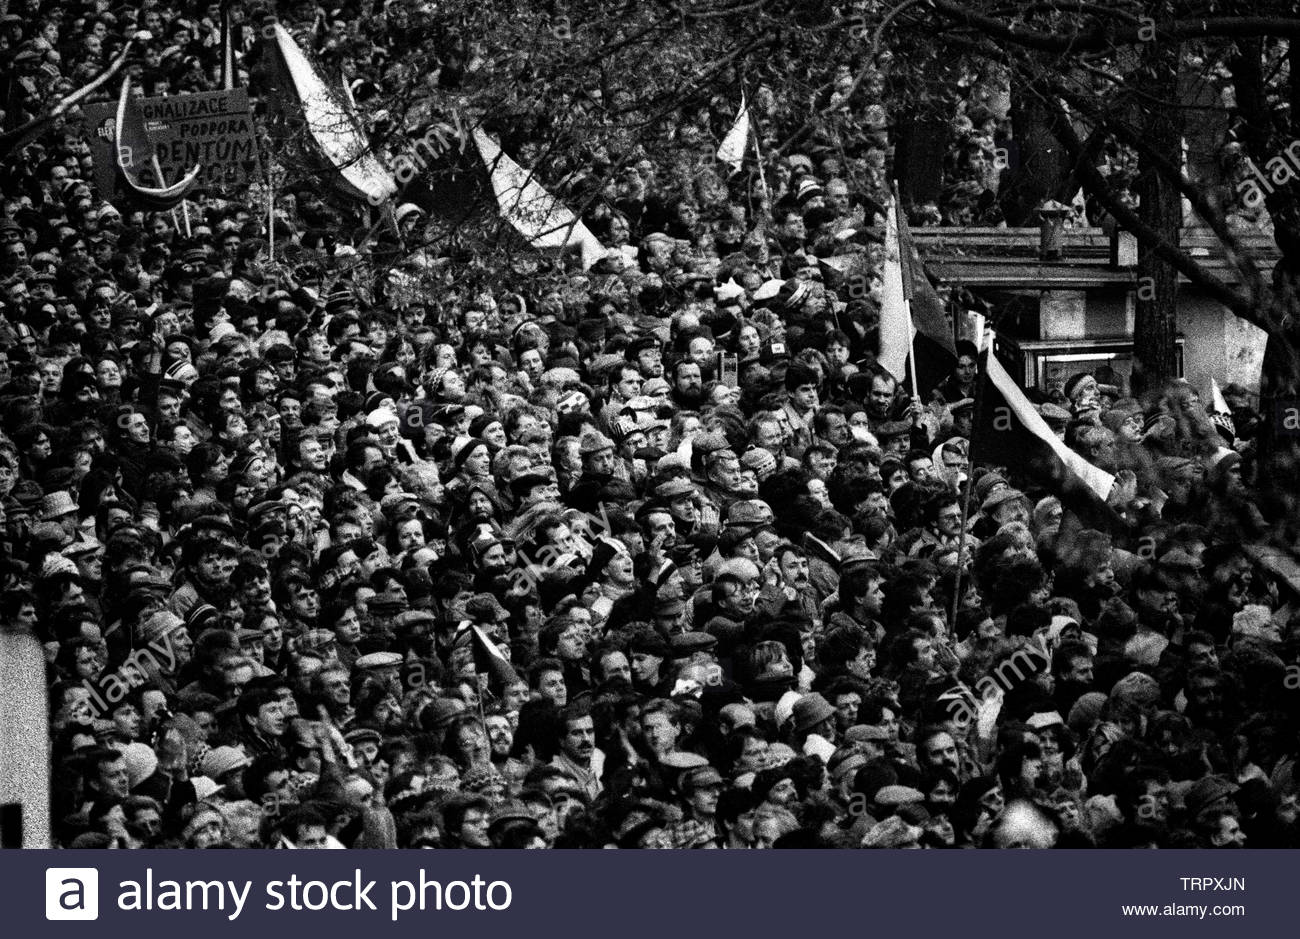 Czechoslovakia, Prague,1989 during the Velvet Revolution, the fall of communism in Eastern Europe. Celebrating the fall of the communist government by in Wenceslas Square . COPYRIGHT PHOTOGRAPH BY BRIAN HARRIS  © 07808-579804 Stock Photo